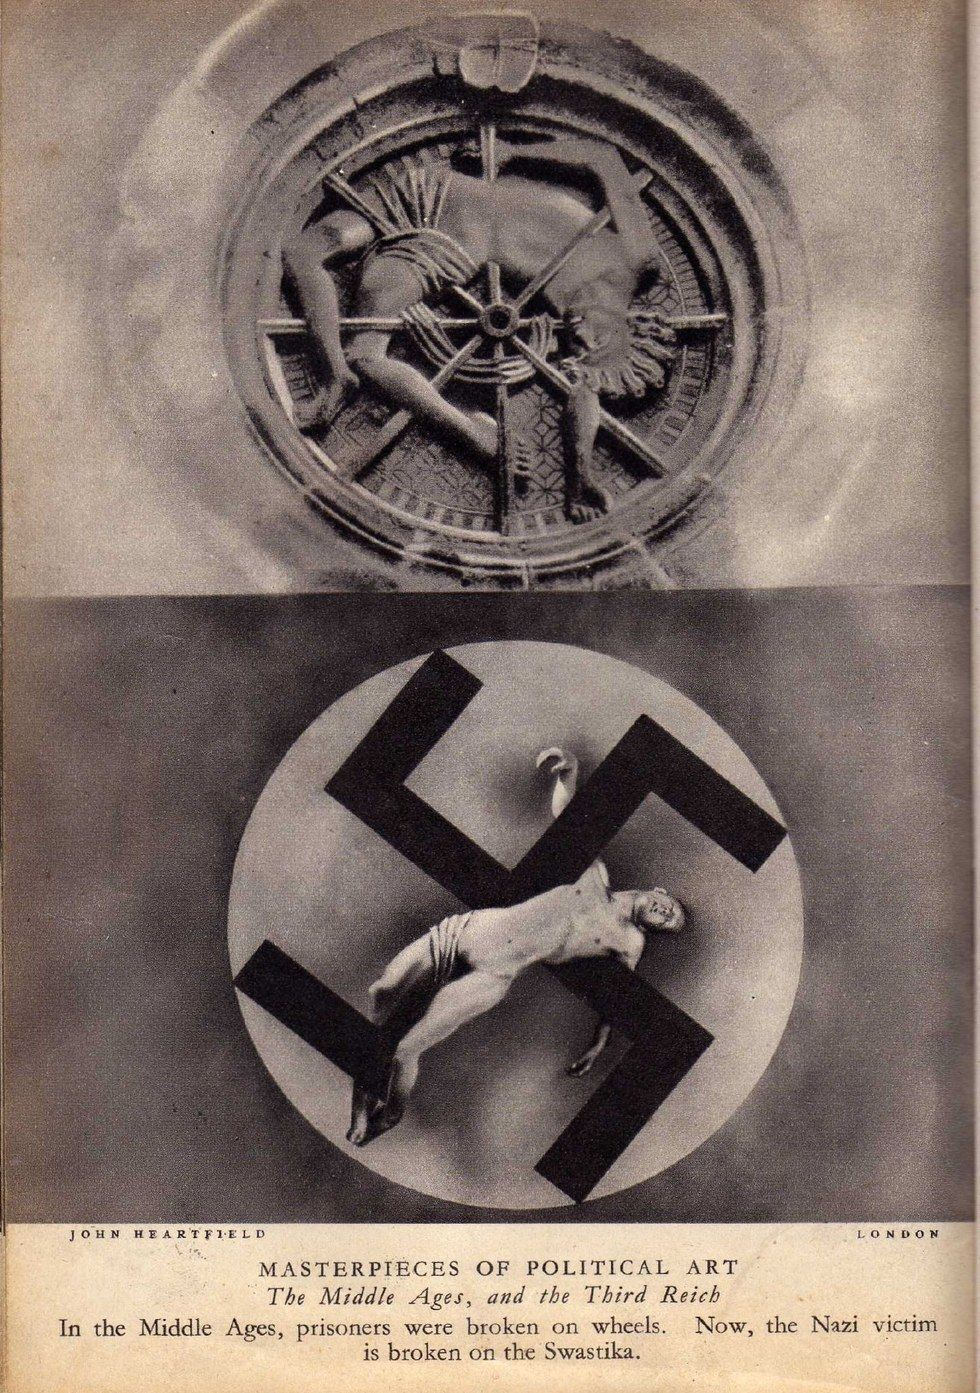 John Heartfield, Jak w średniowieczu, tak w Trzeciej Rzeczy / As in the Middle Ages, so in the Third Reich, 1934